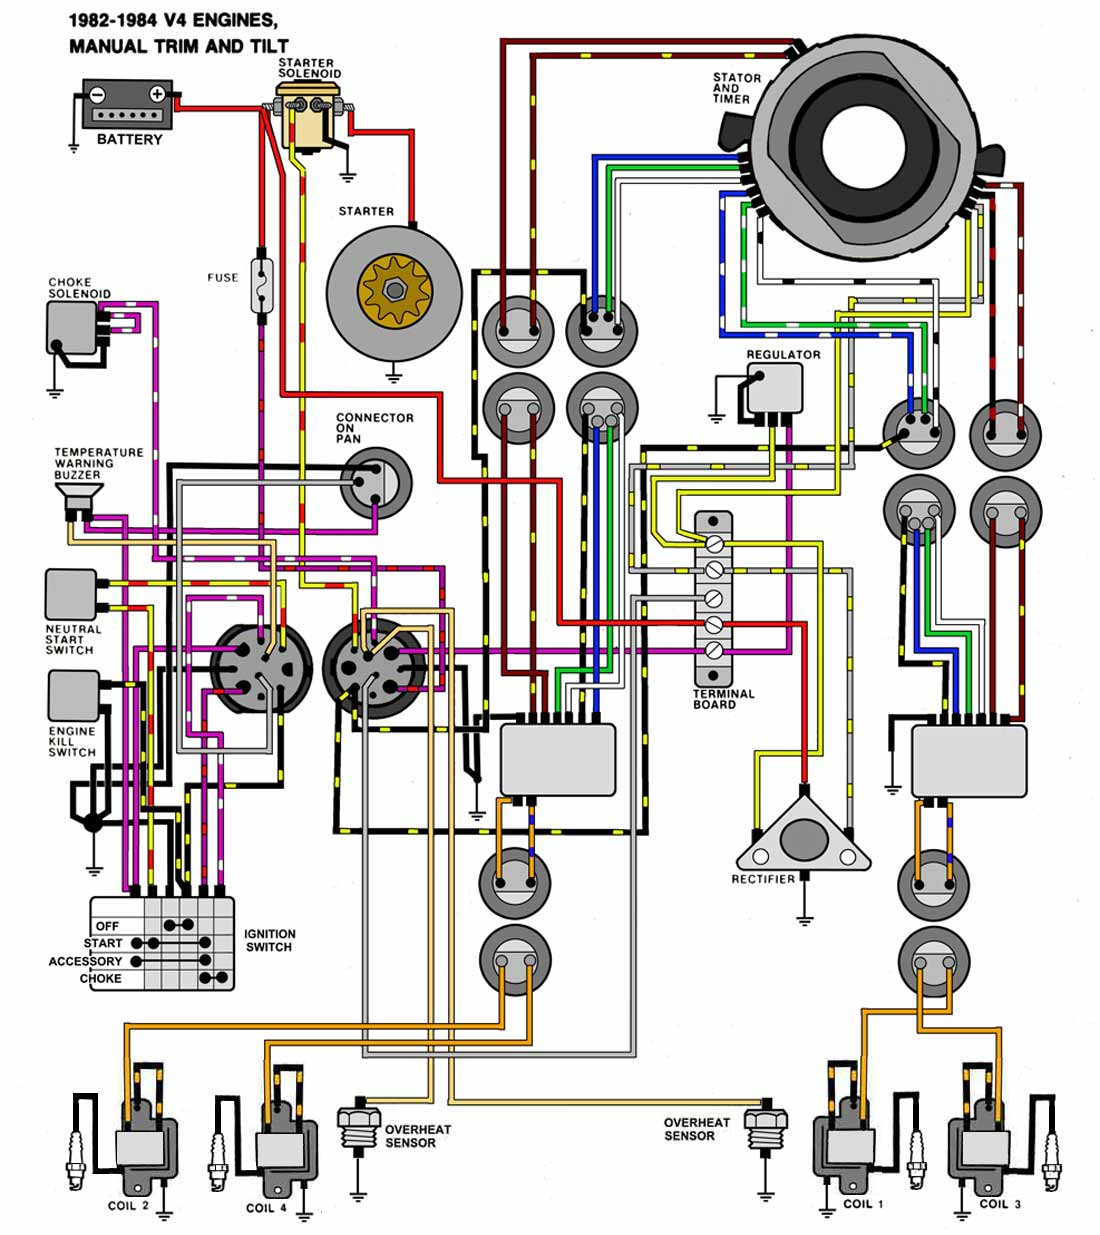 82_84_V4_NOTNT mastertech marine evinrude johnson outboard wiring diagrams evinrude key switch wiring diagram at gsmportal.co